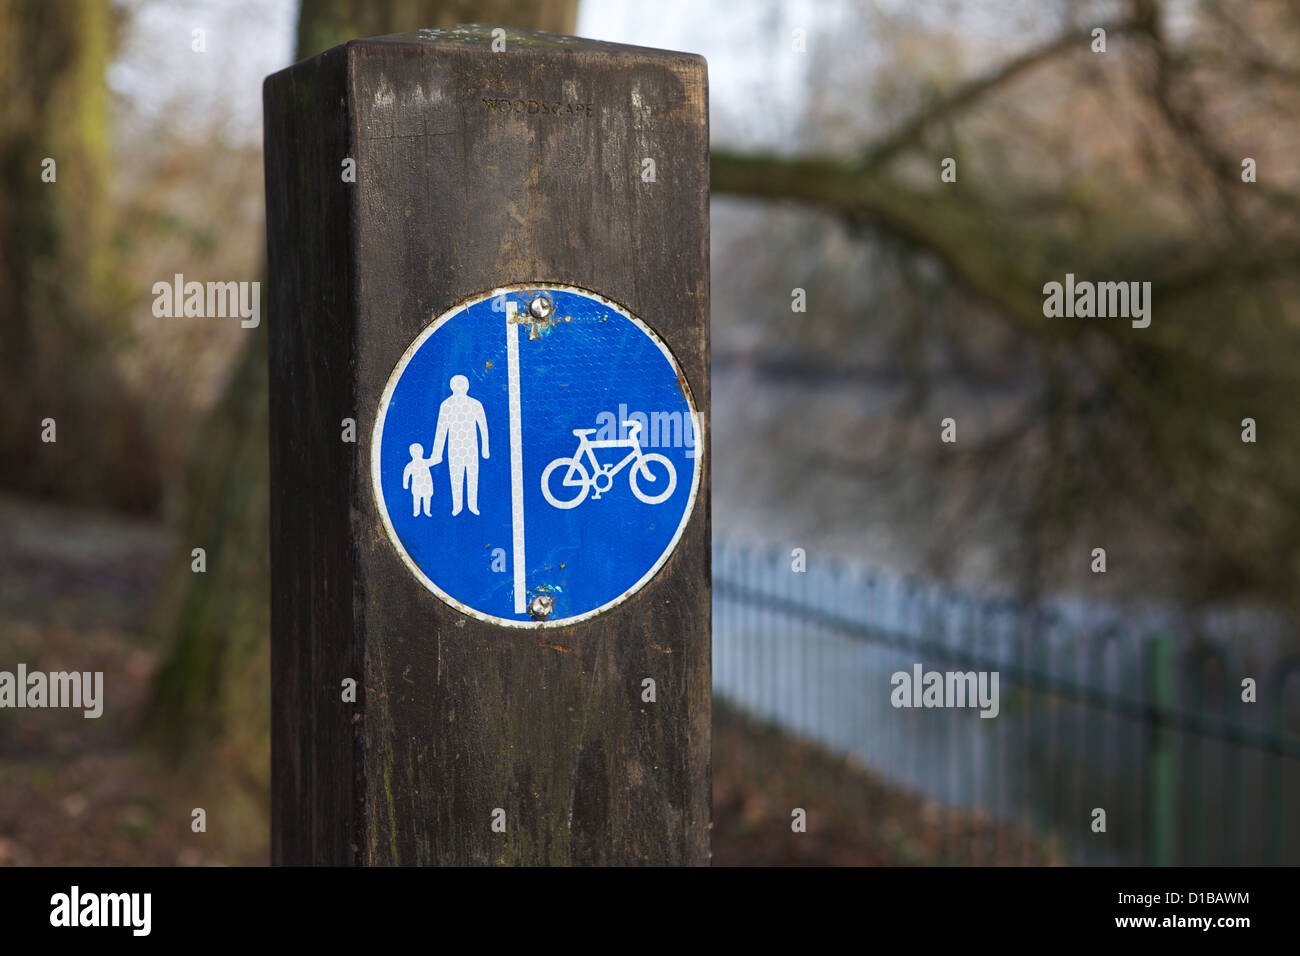 Pedestrian and Cyclist sign for paths in public parks Solihull - Stock Image